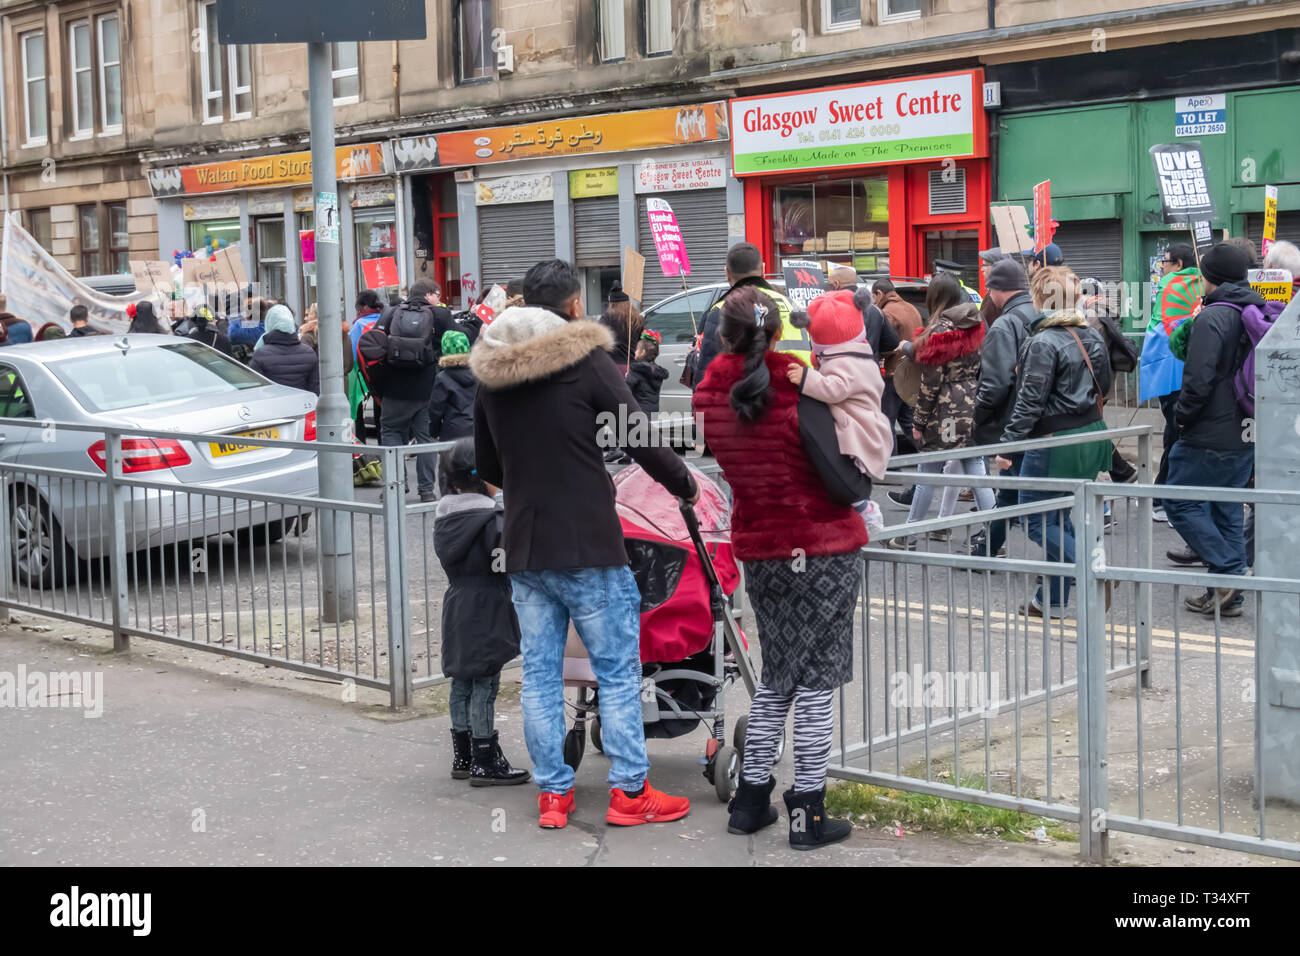 Glasgow, Scotland, UK. 6th April, 2019: Spectators watching the annual International Roma Day community procession through the streets of Govanhill to celebrate Romani culture and raise awareness of the issues facing Romani people. Credit: Skully/Alamy Live News - Stock Image